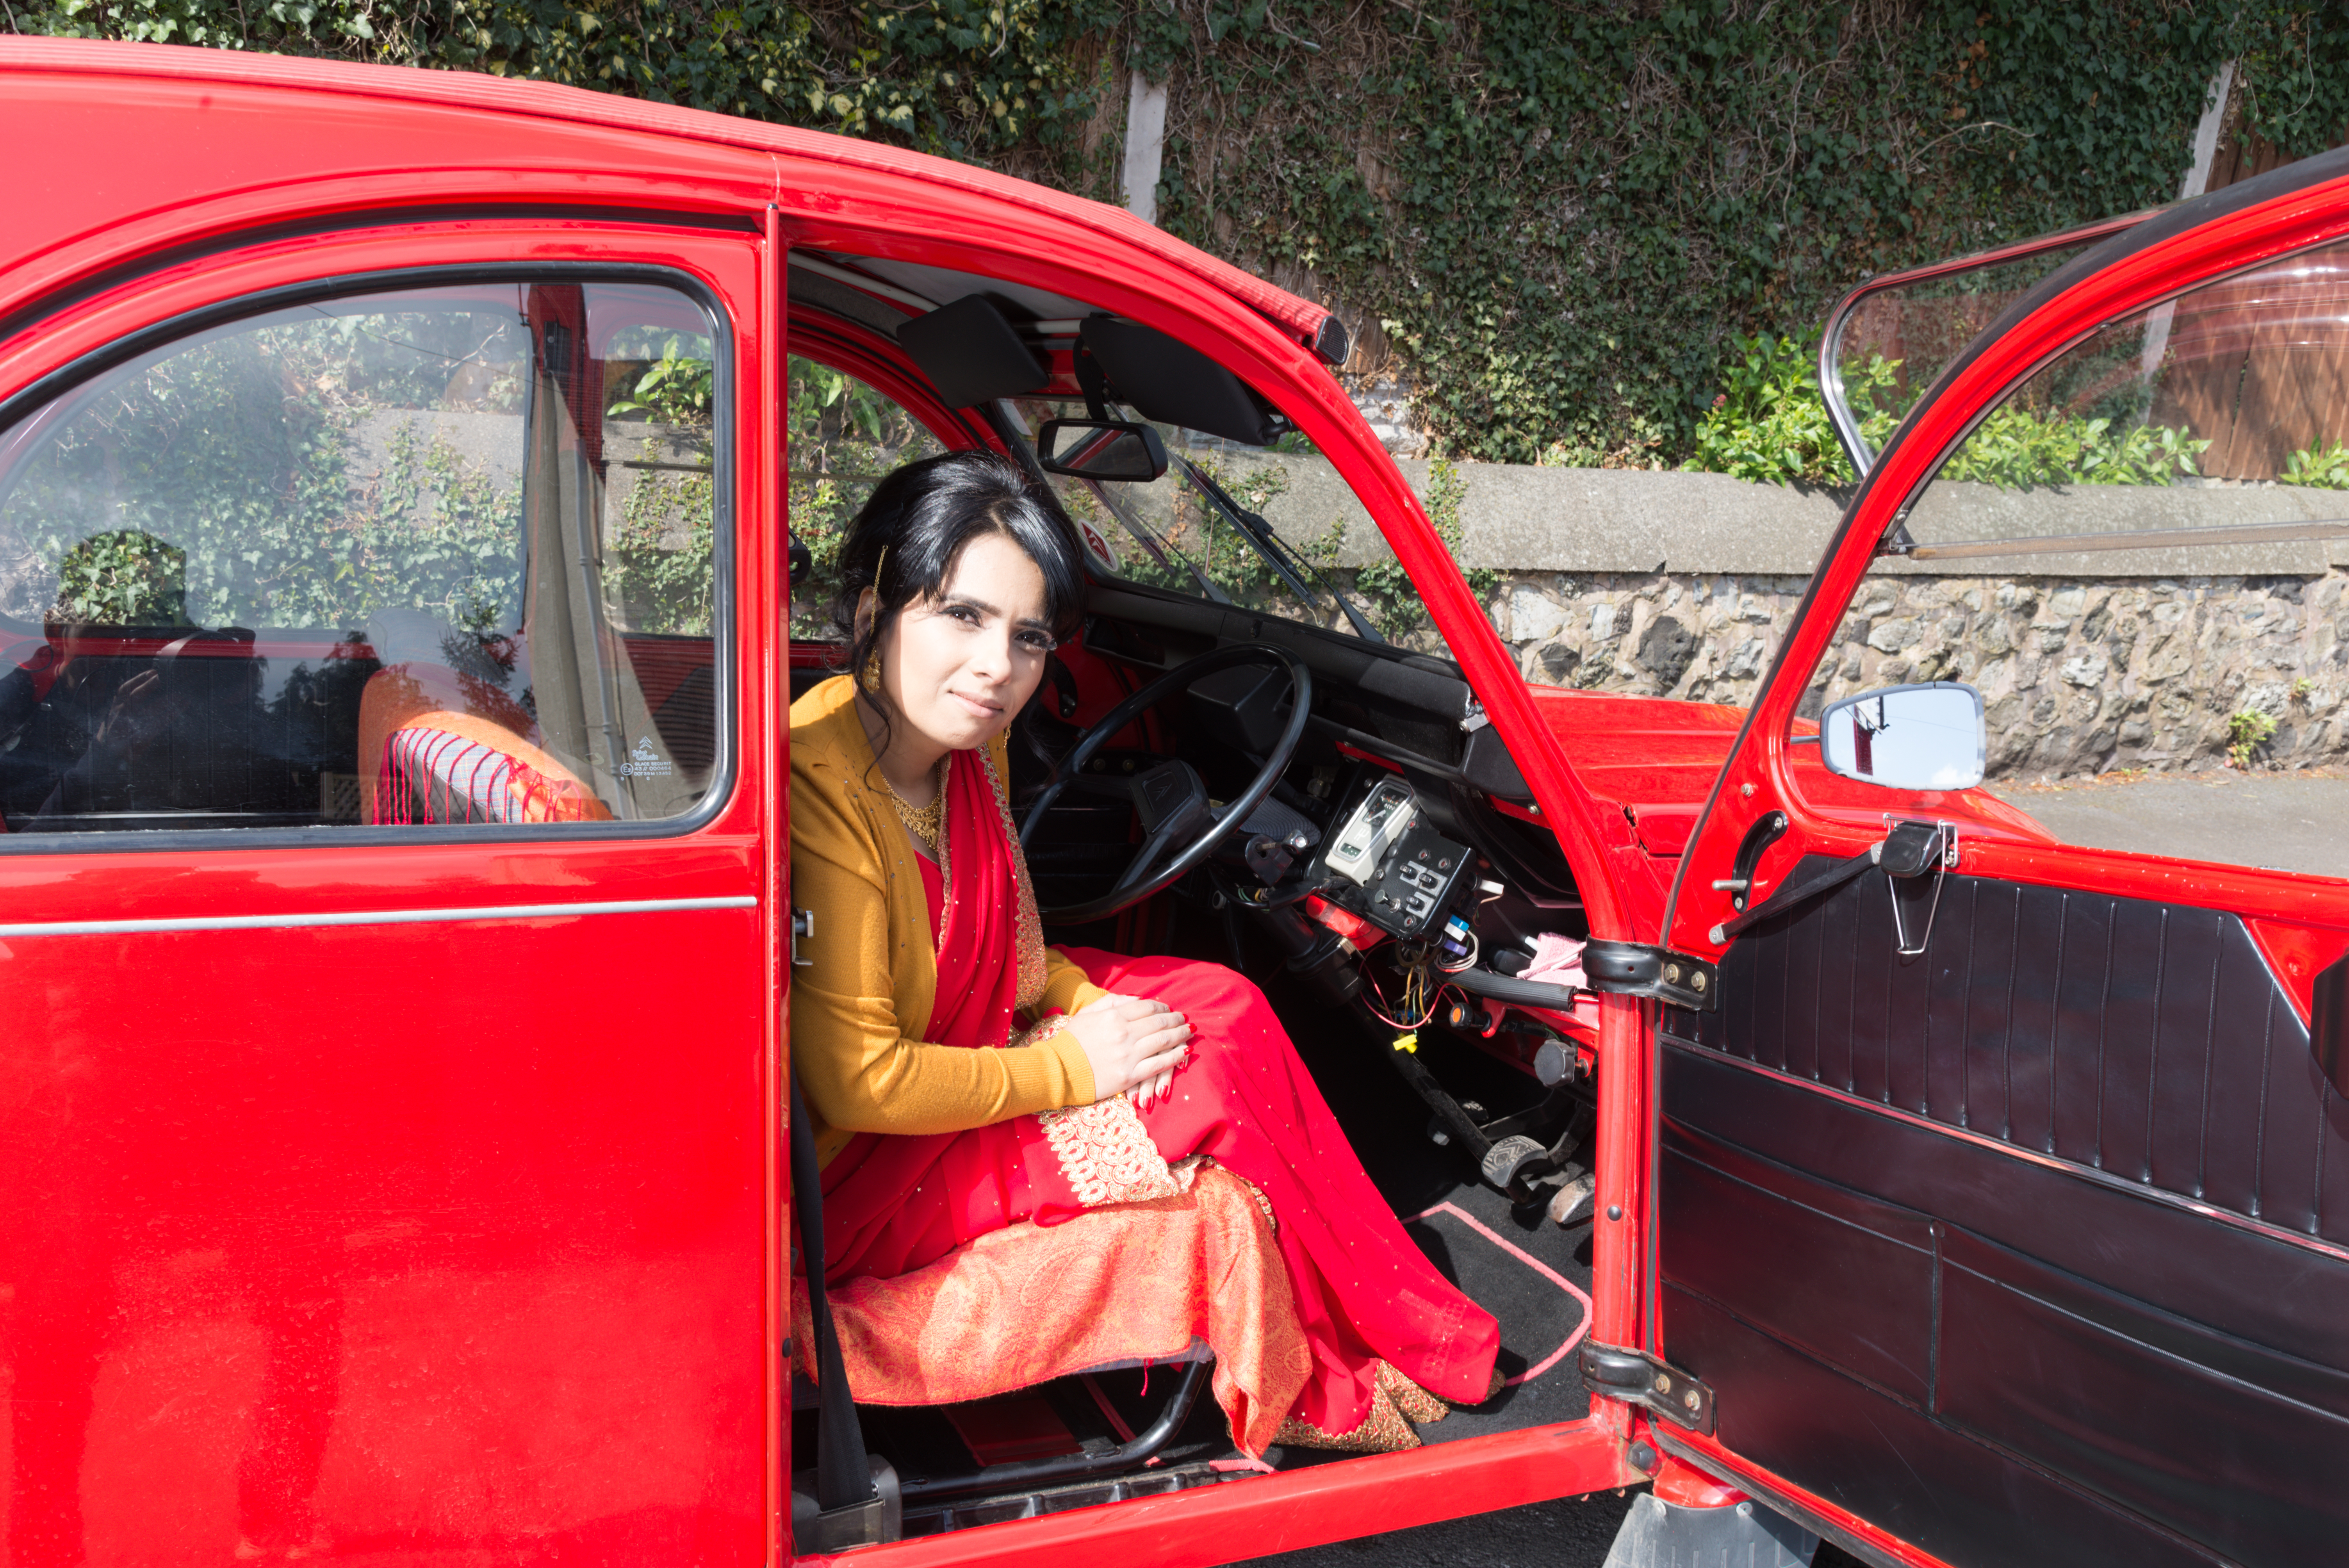 Artist Dawinder Bansal (pictured) has collected stories and photographs of Asian women with their cars (Photo credit: Outroslide)